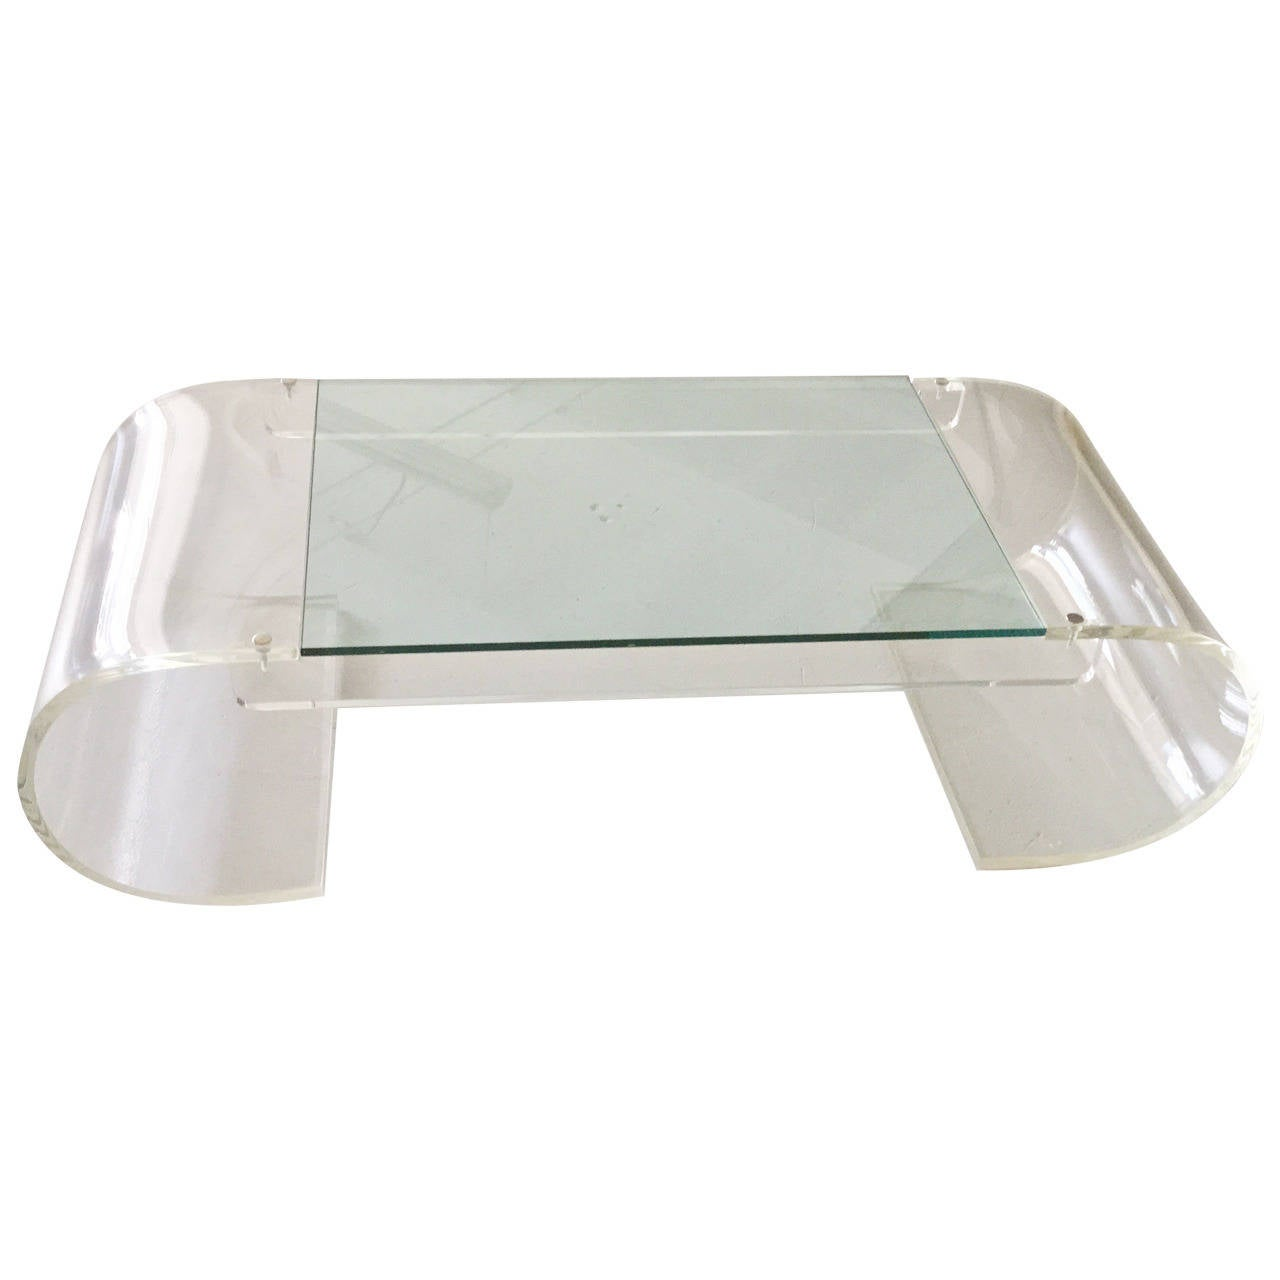 Lucite Coffee Table Bing Images